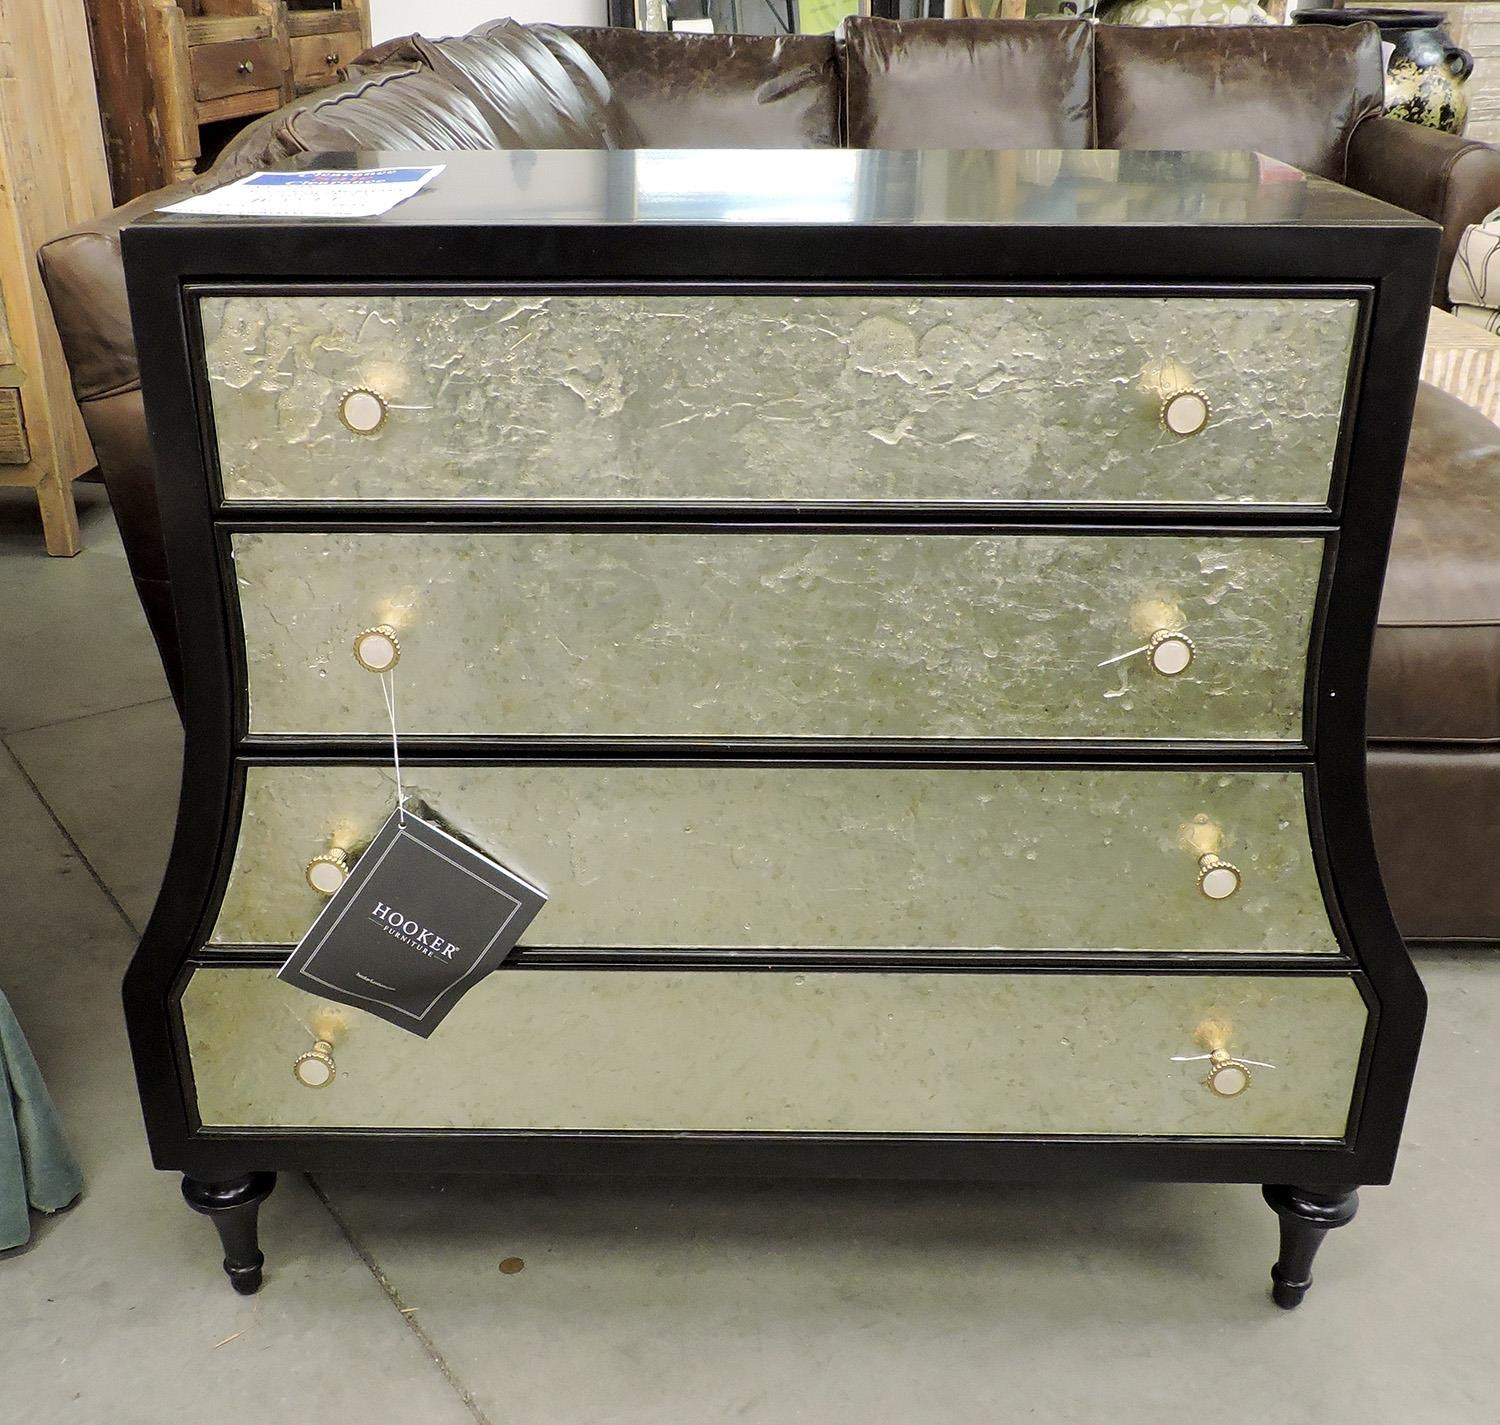 Hooker Furniture Clearance Mirrored Bachelors Chest - Item Number: 907360604